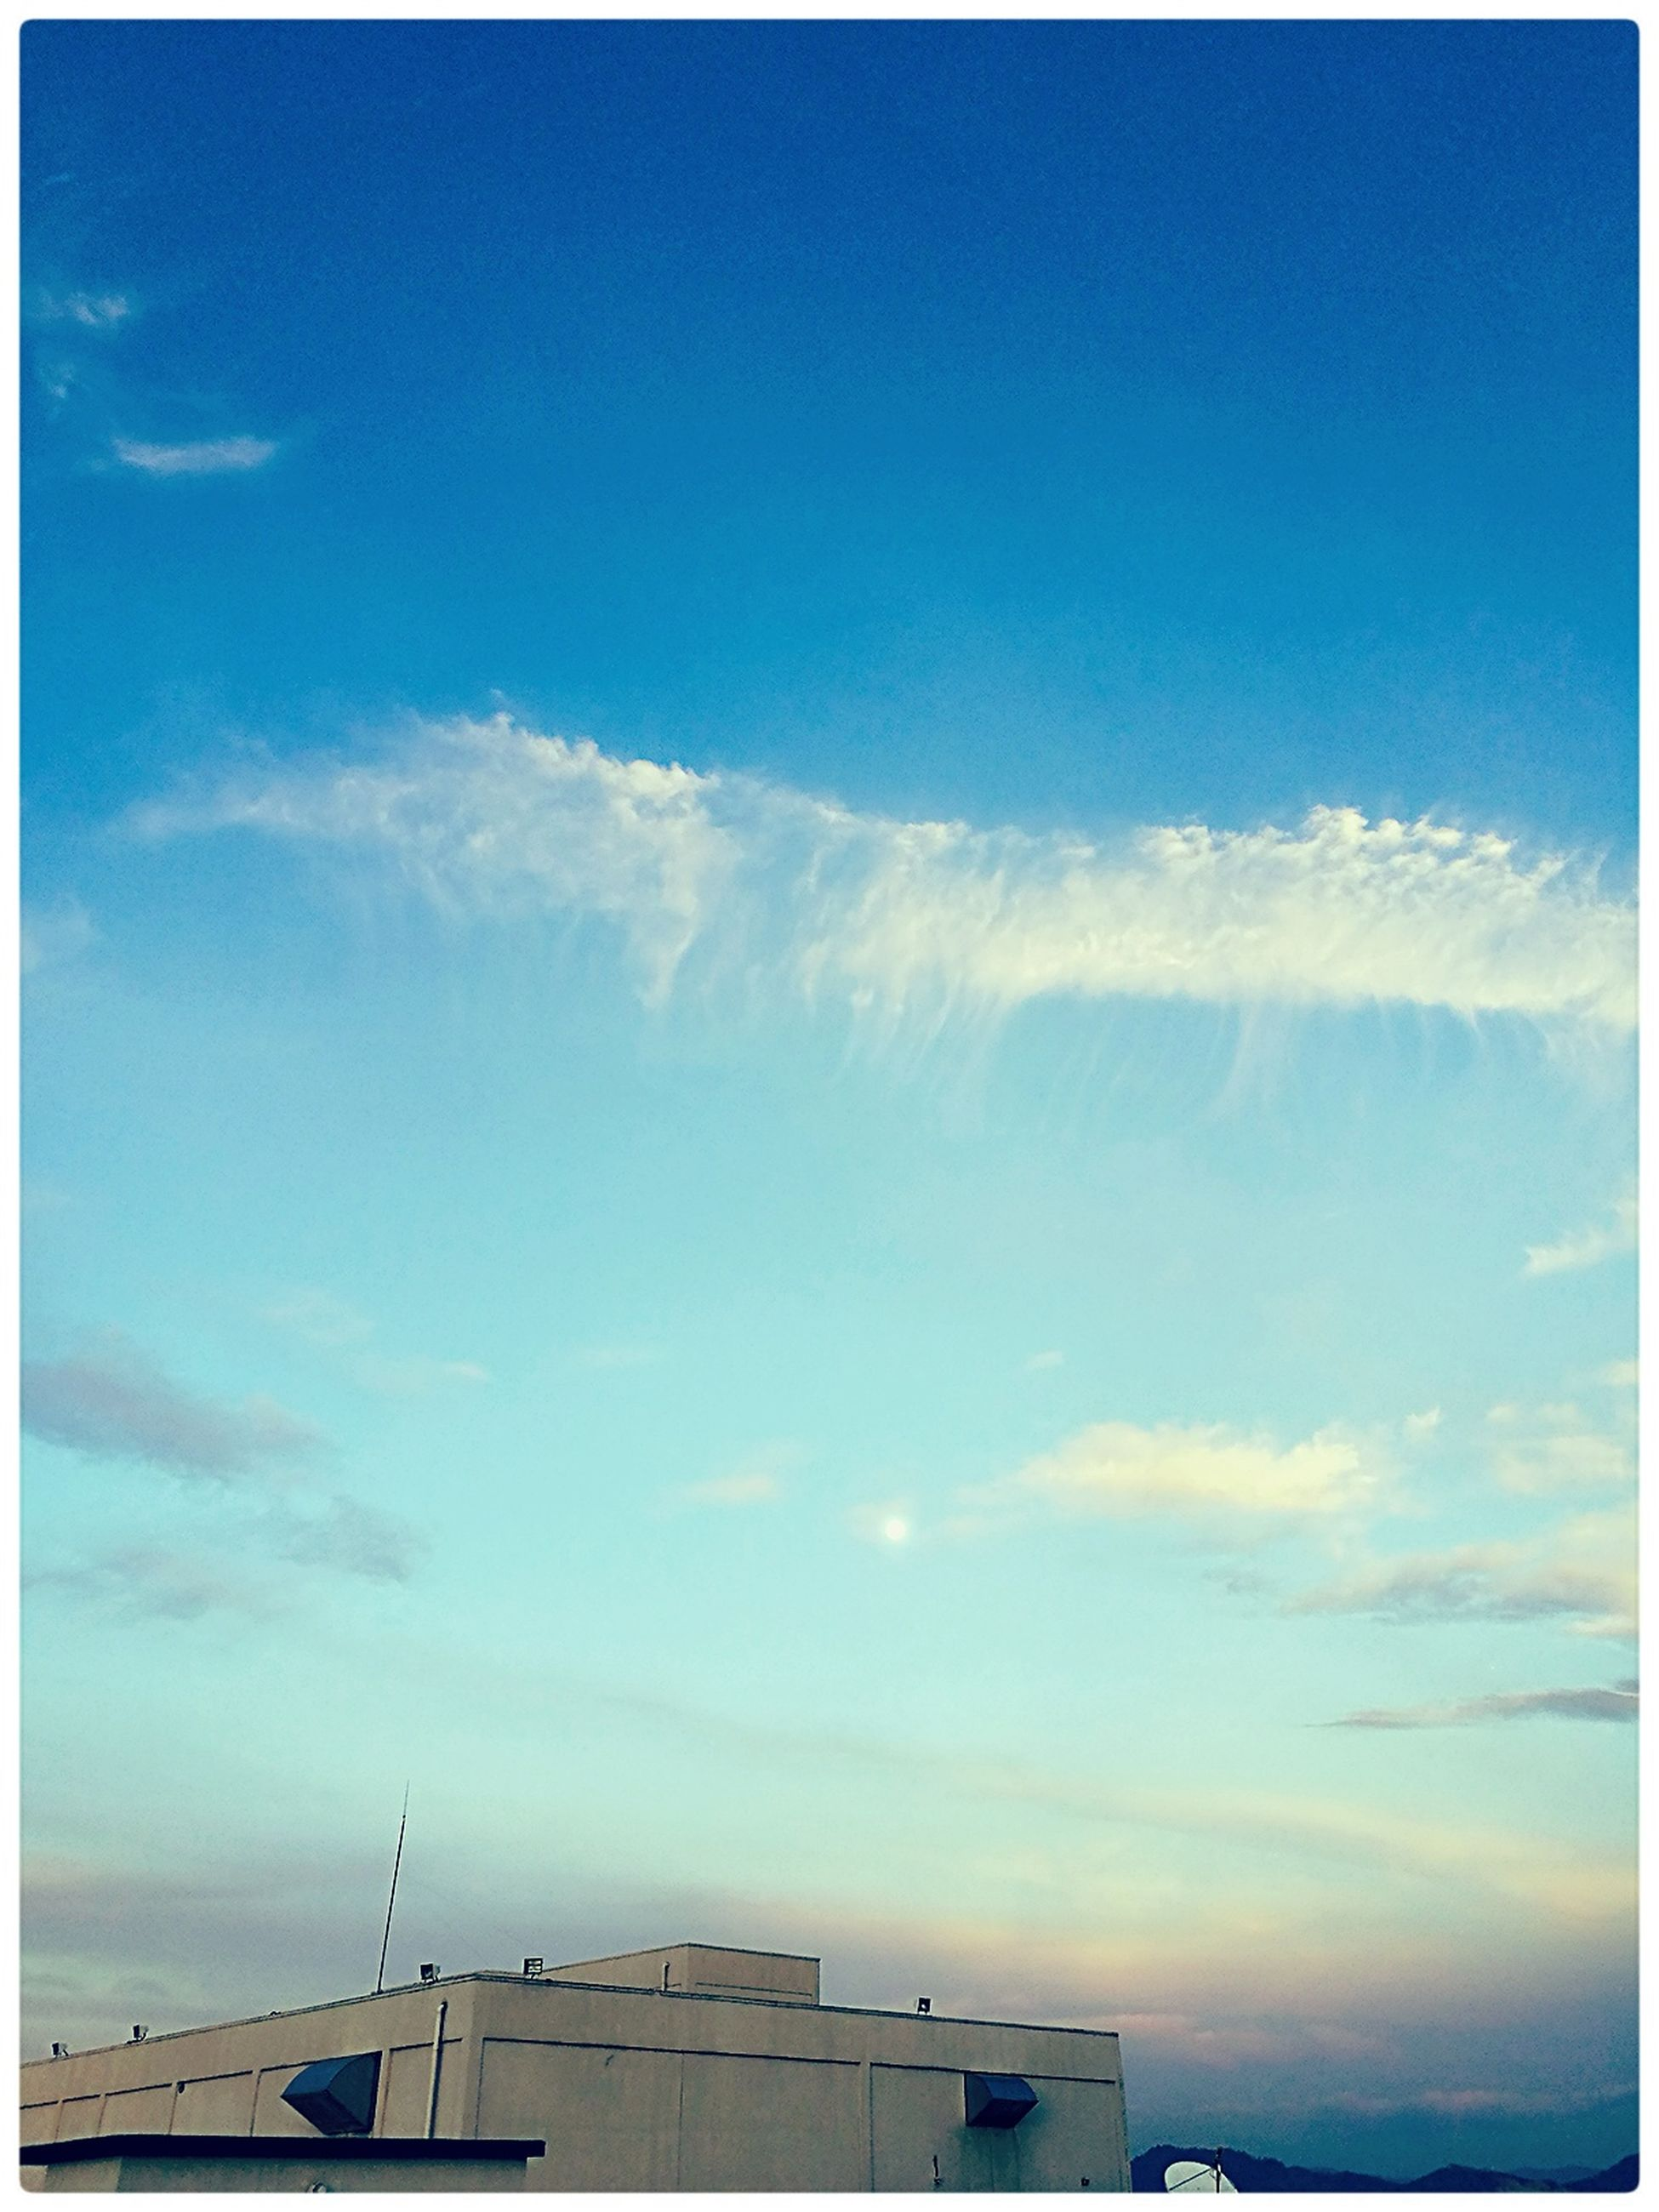 sky, blue, sea, nature, no people, scenics, outdoors, day, beauty in nature, architecture, water